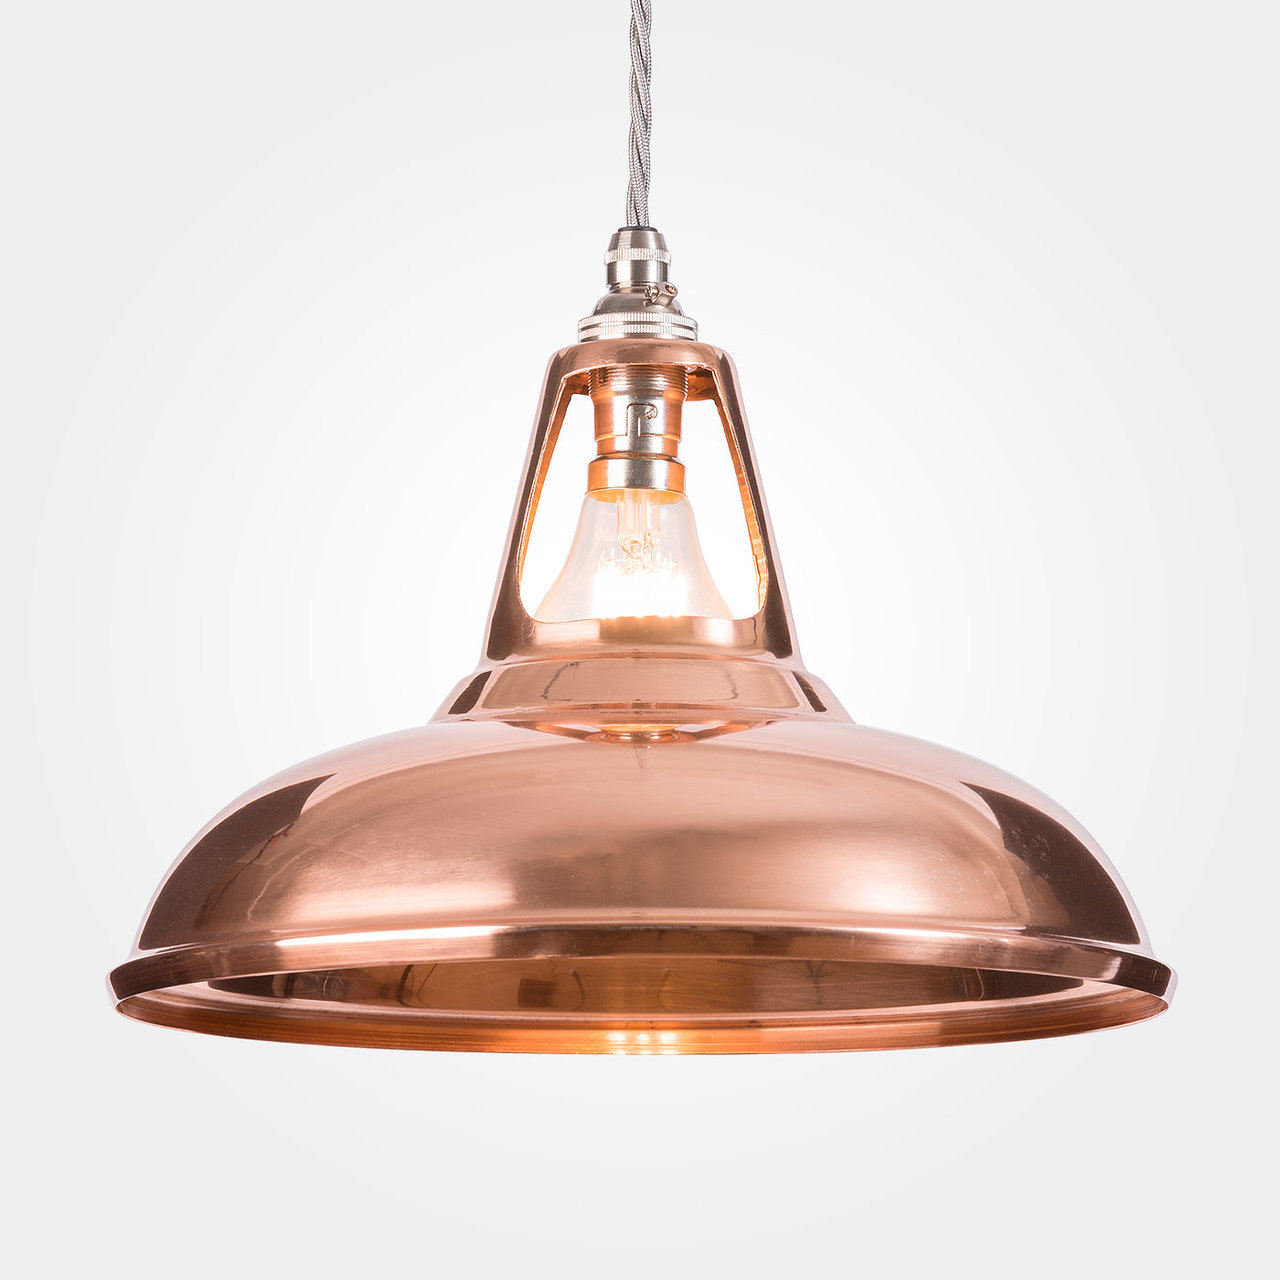 Copper Lighting Pendant 10 Reasons To Buy Copper Pendant Ceiling Light Warisan